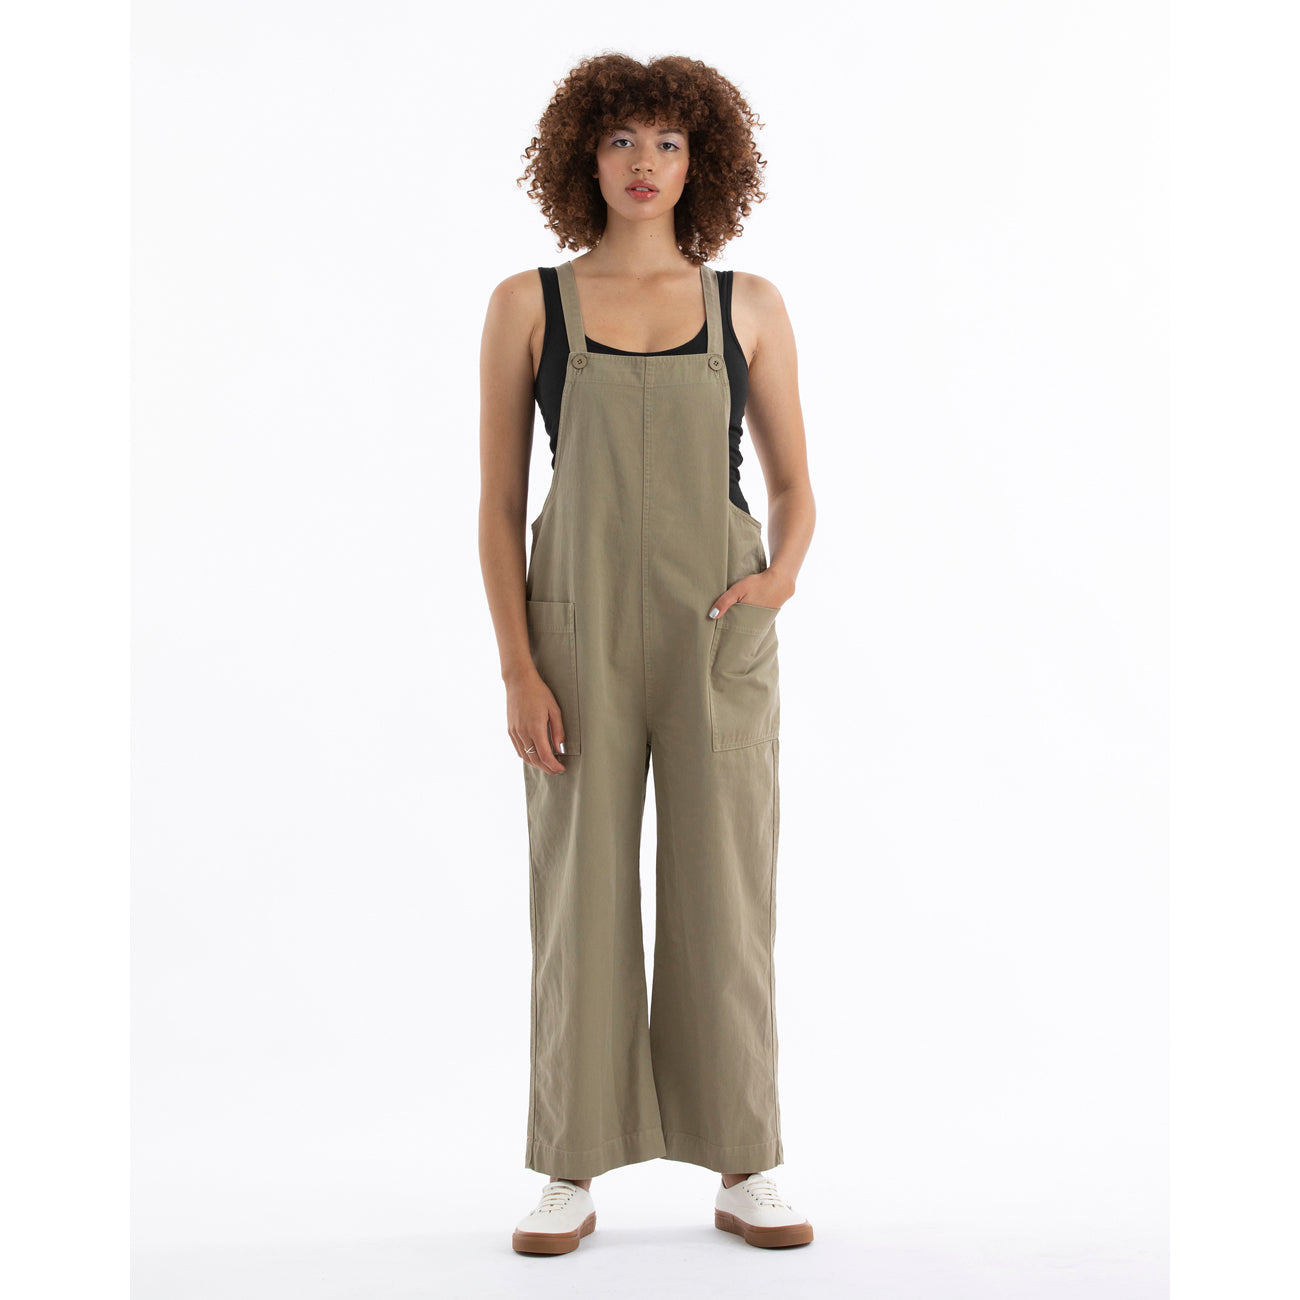 overall jumper in khaki